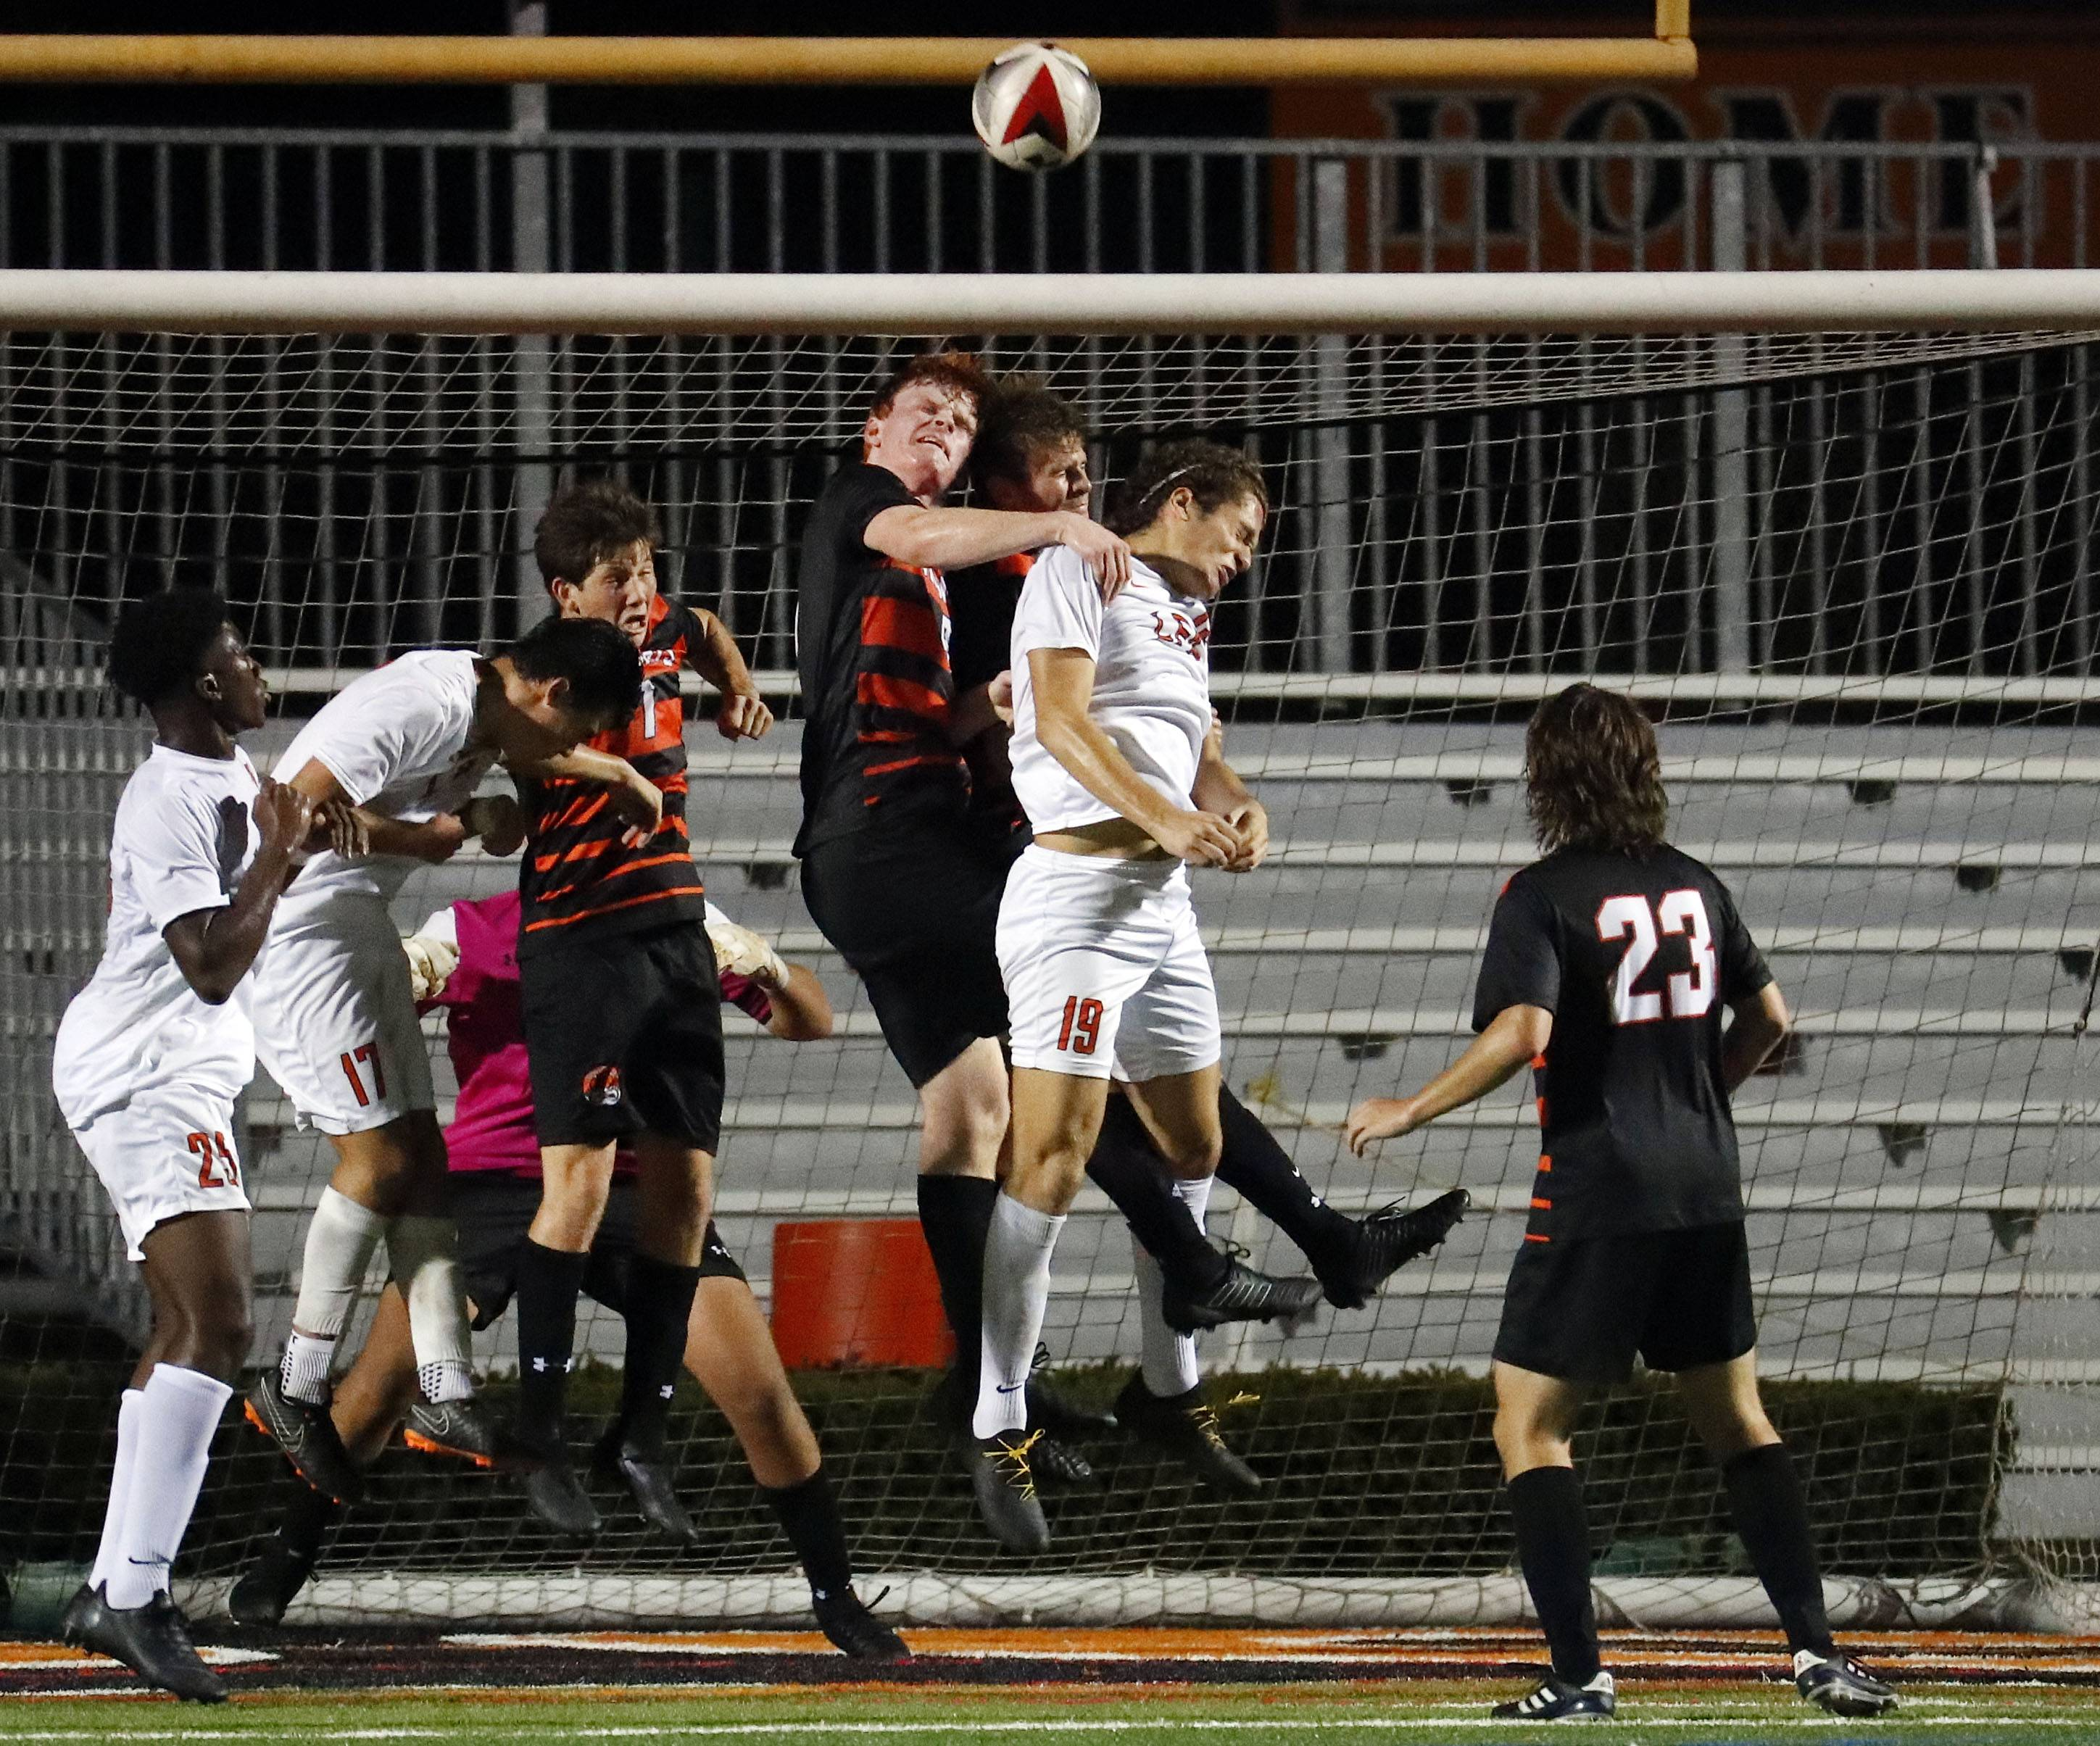 Players go up for a crossed ball as Libertyville took on Lake Forest Academy Tuesday night in Libertyville.